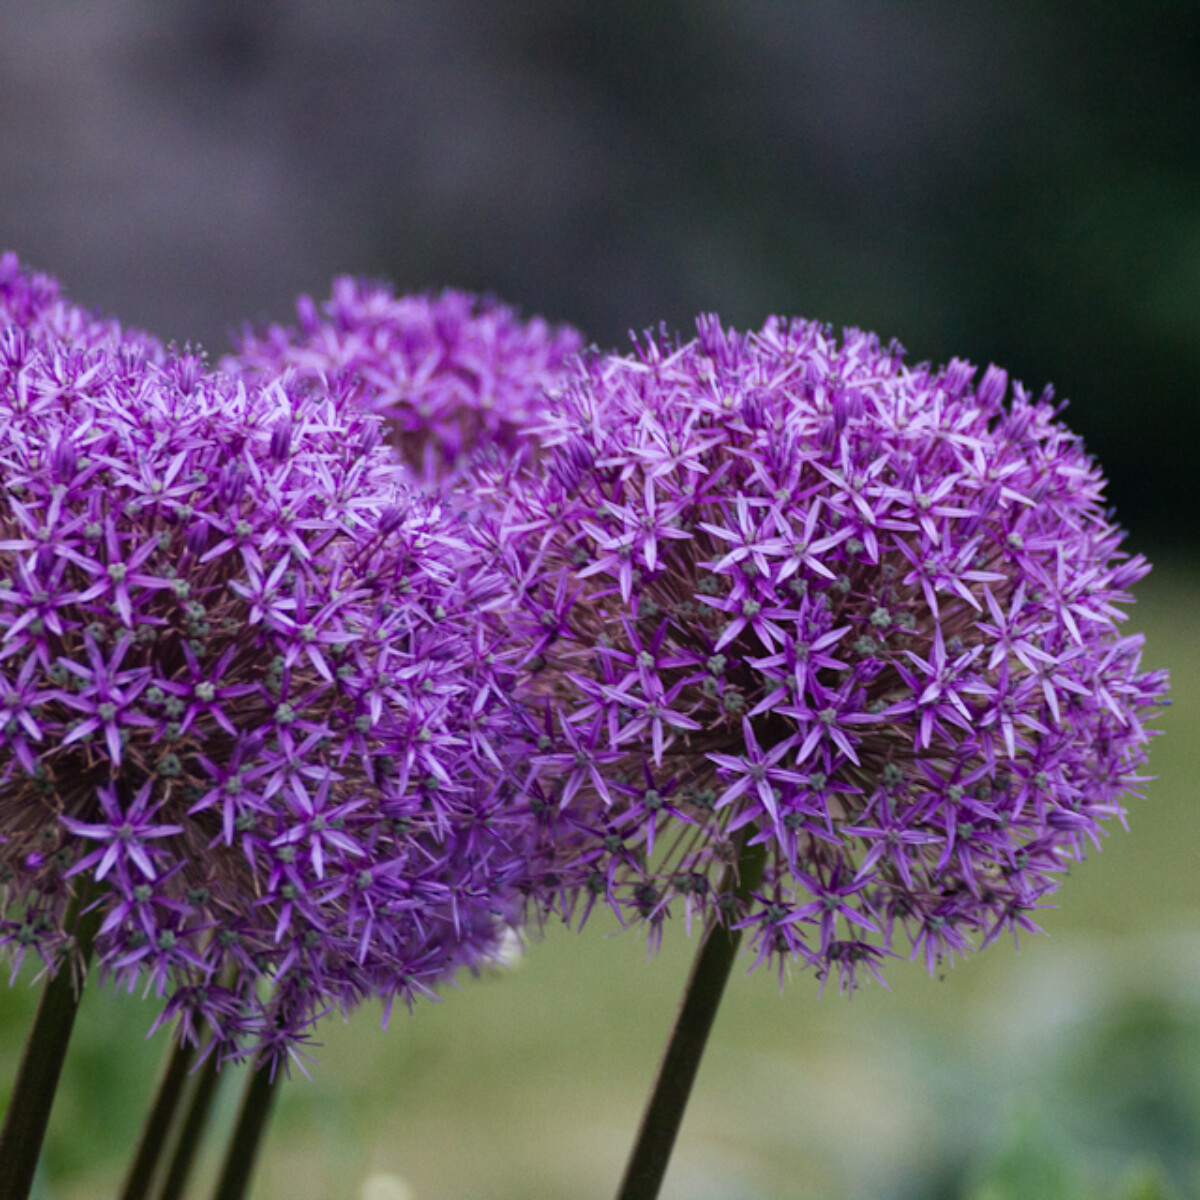 What is this flower called?